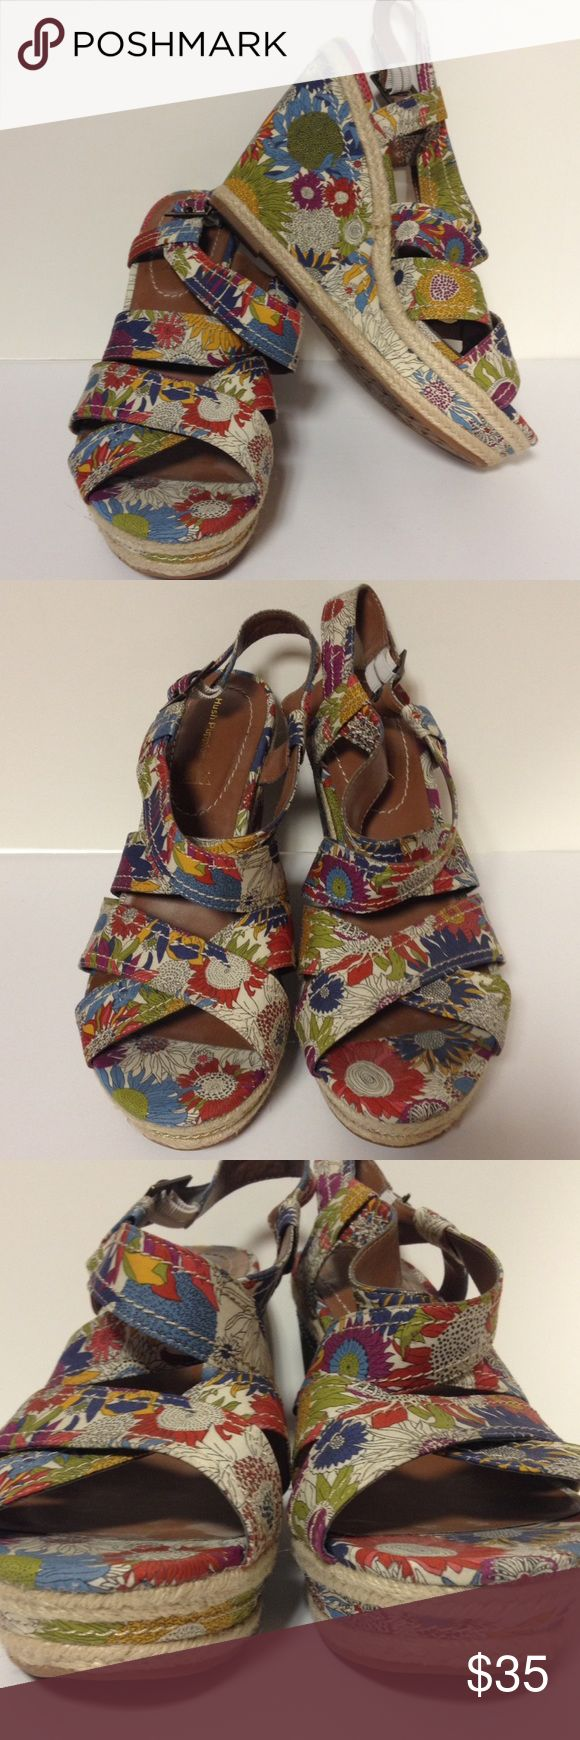 """Hush Puppies floral wedge sandals size 10 Love the colors.  Adorable shoes.  Perfect with any outfit.  Size 10.  Wedge is approximately 4 1/2"""" Hush Puppies Shoes Wedges"""